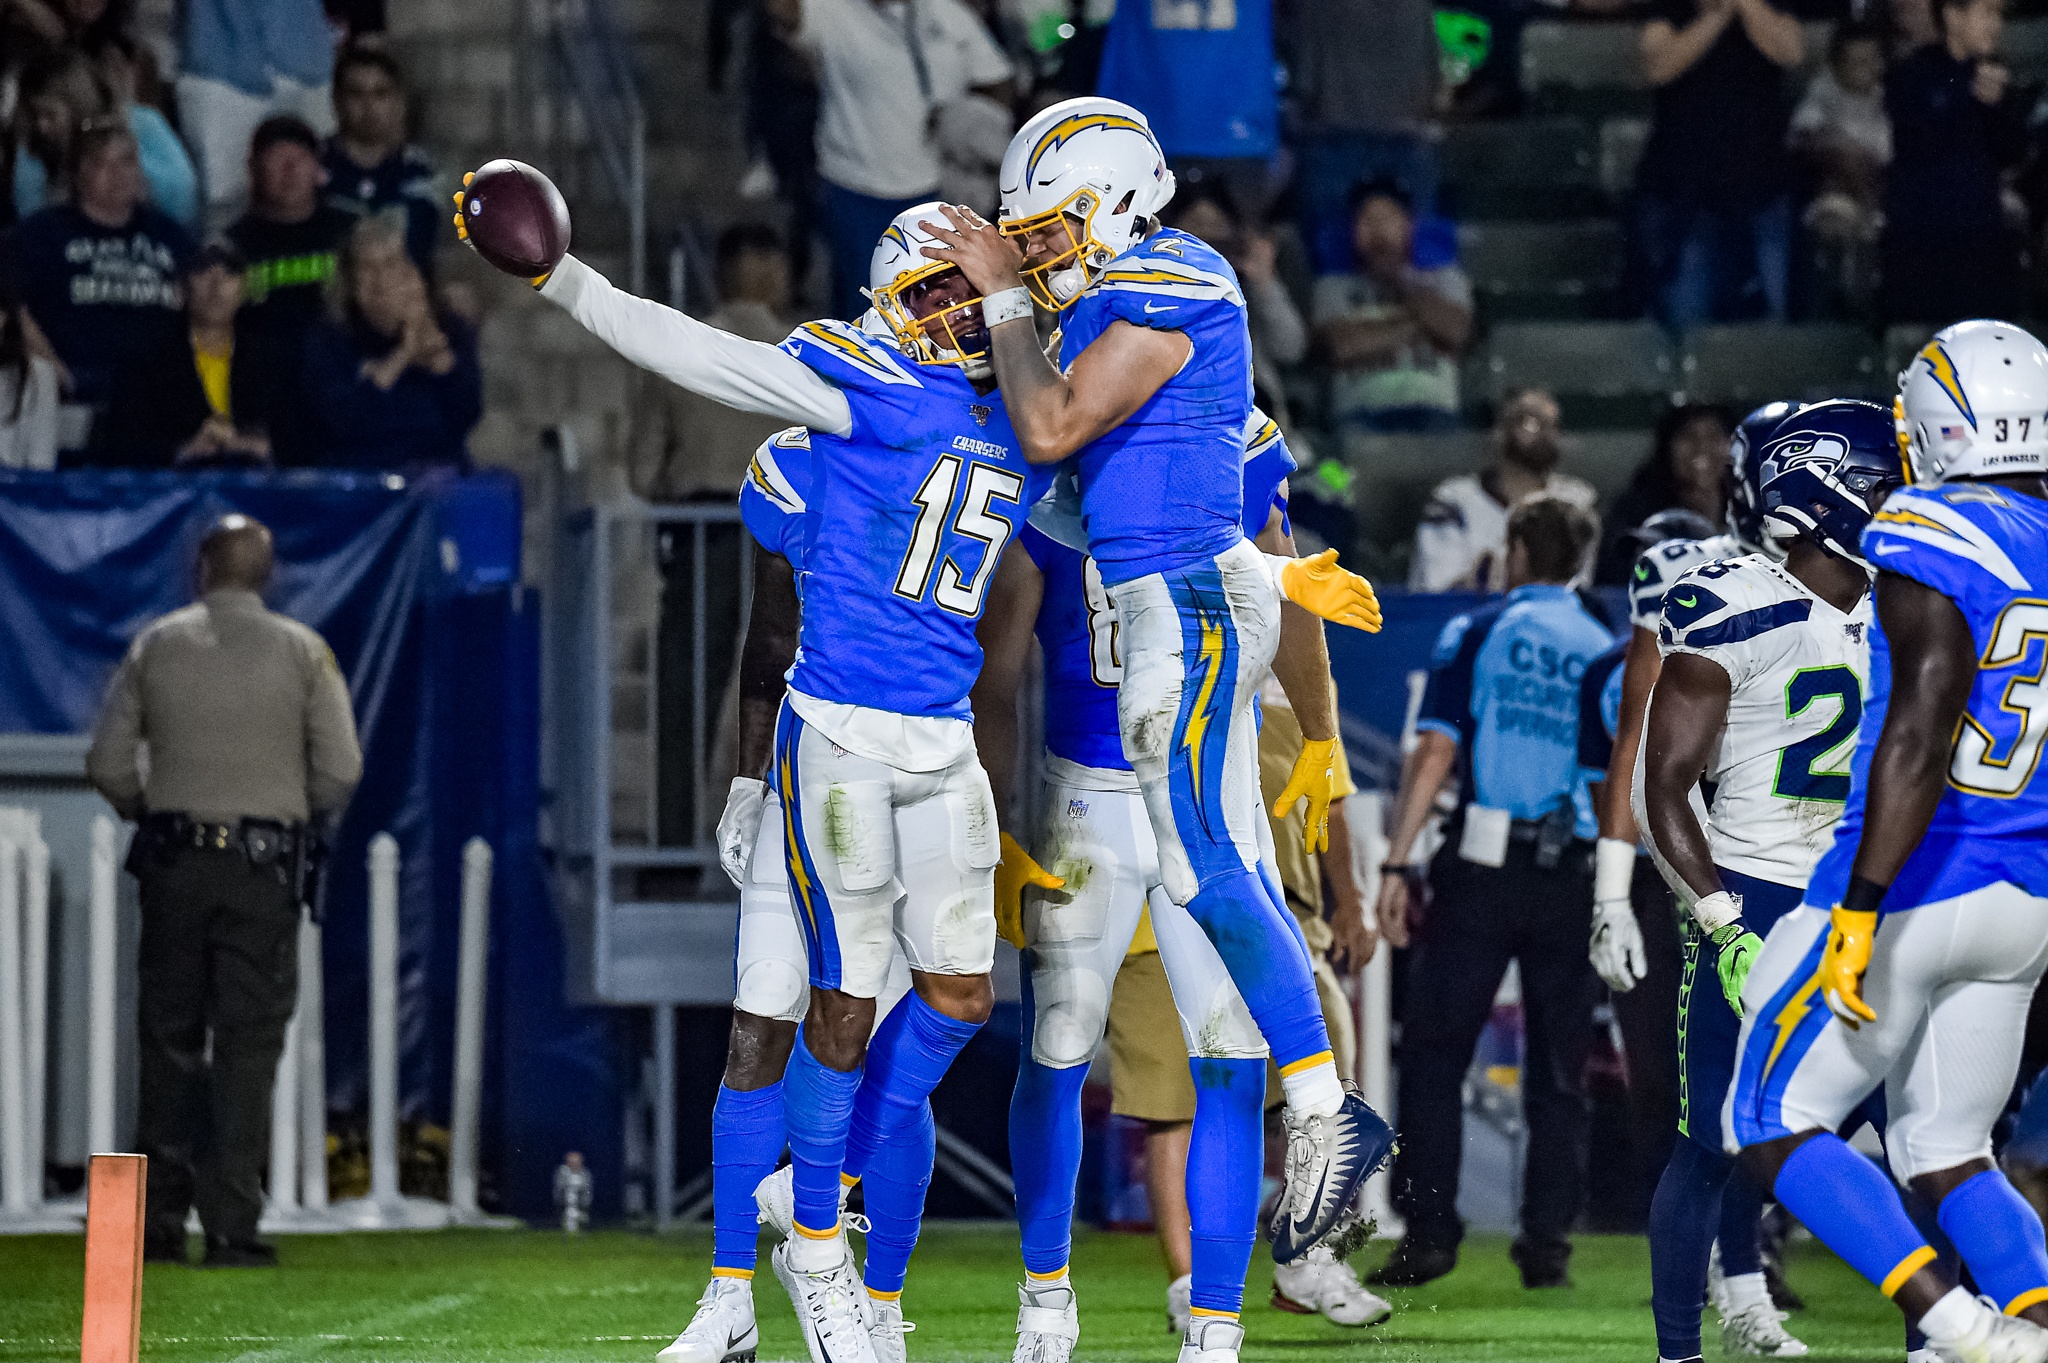 © Mark Hammond/News4usonline - Aug. 24, 2019 - Seahawks vs. Chargers - Chargers wide receiver Andre Patton (15) celebrate his eight-yard touchdown grab.